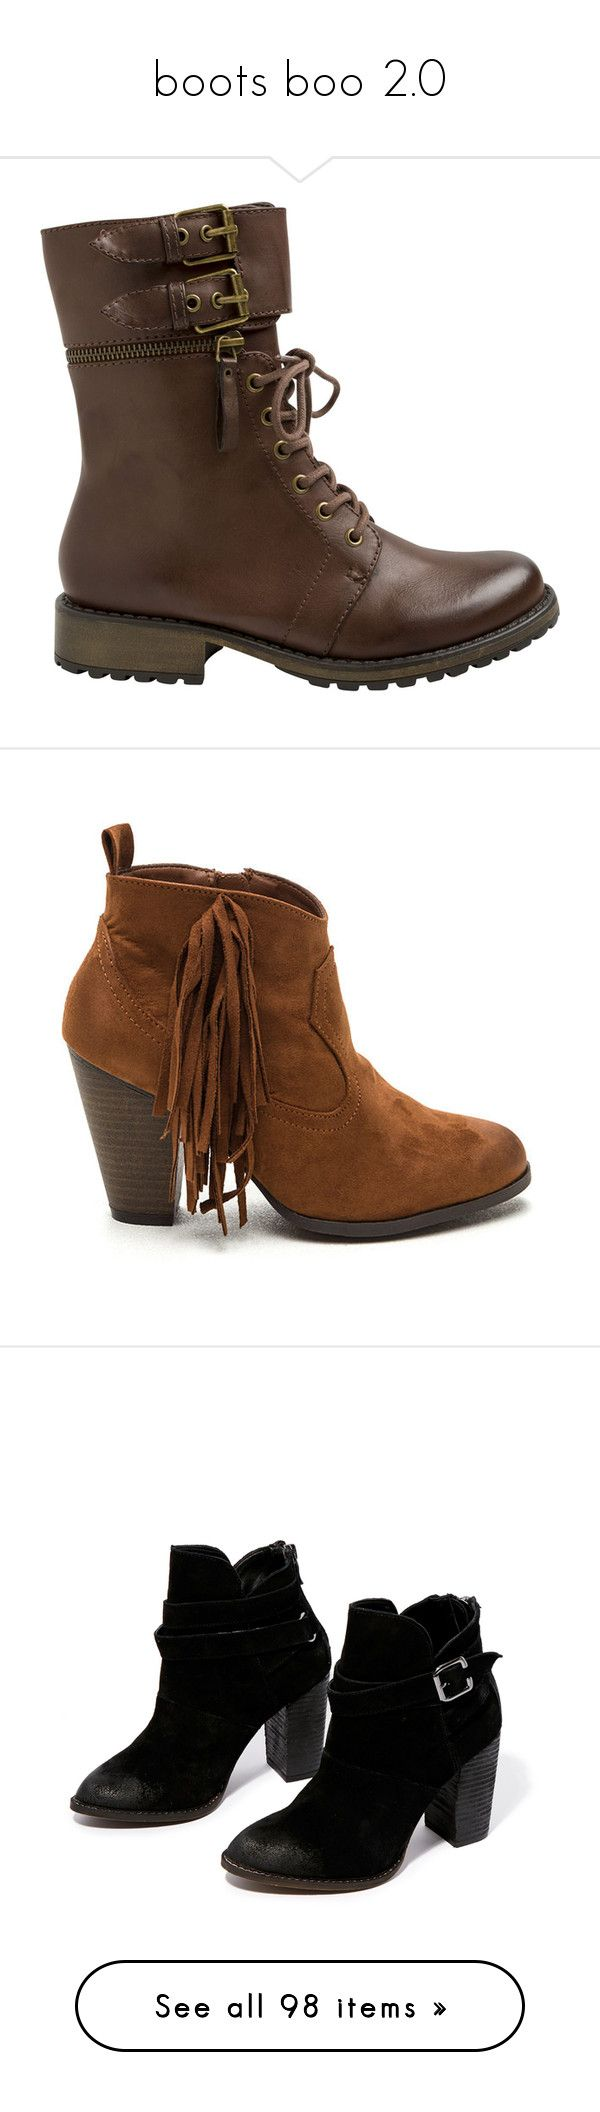 """""""boots boo 2.0"""" by lilyflower723 ❤ liked on Polyvore featuring shoes, boots, ankle booties, ankle boots, brown, laced up boots, ankle combat boots, brown booties, brown lace up booties and lace-up bootie"""